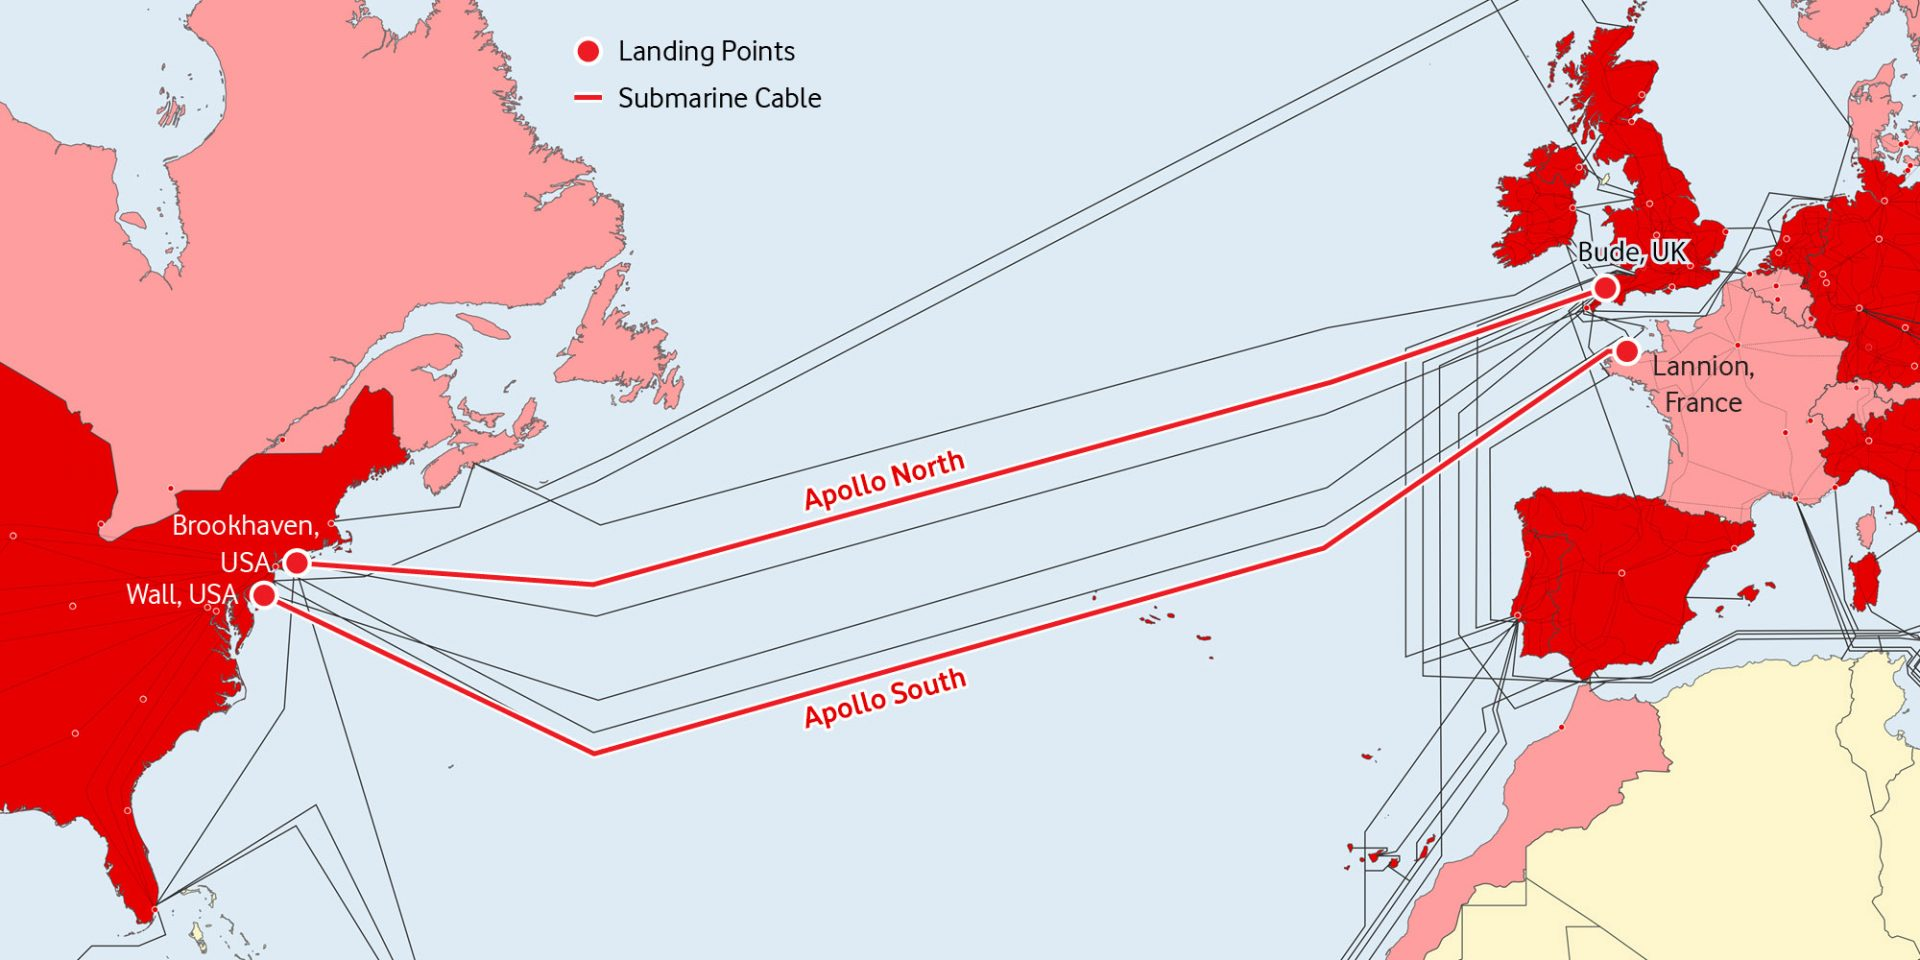 A map of Vodafone's Apollo North and South transatlantic fibre optic cables